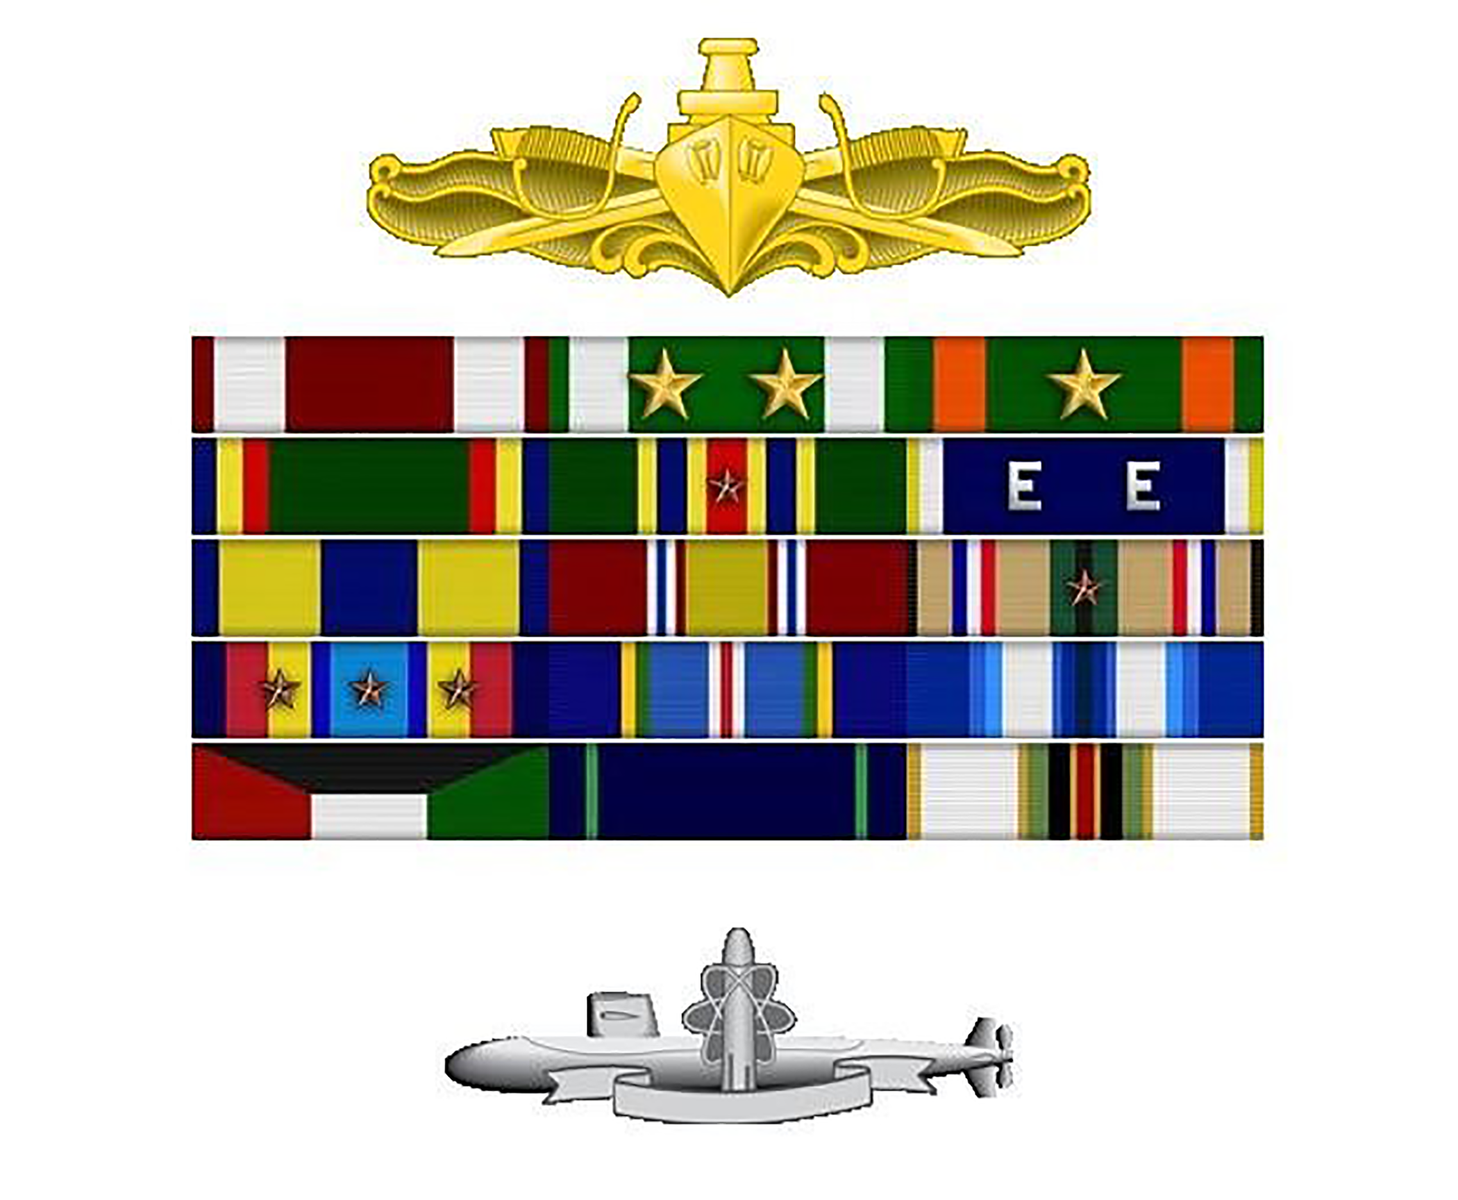 Service medals: Meritorious Service medal; Navy Commendation medal (two stars representing second, third awards); Navy Achievement medal; Navy Unit Commendation; Navy Meritorious Unit Commendation; Navy Expeditionary medal; National Defense Service Medal.